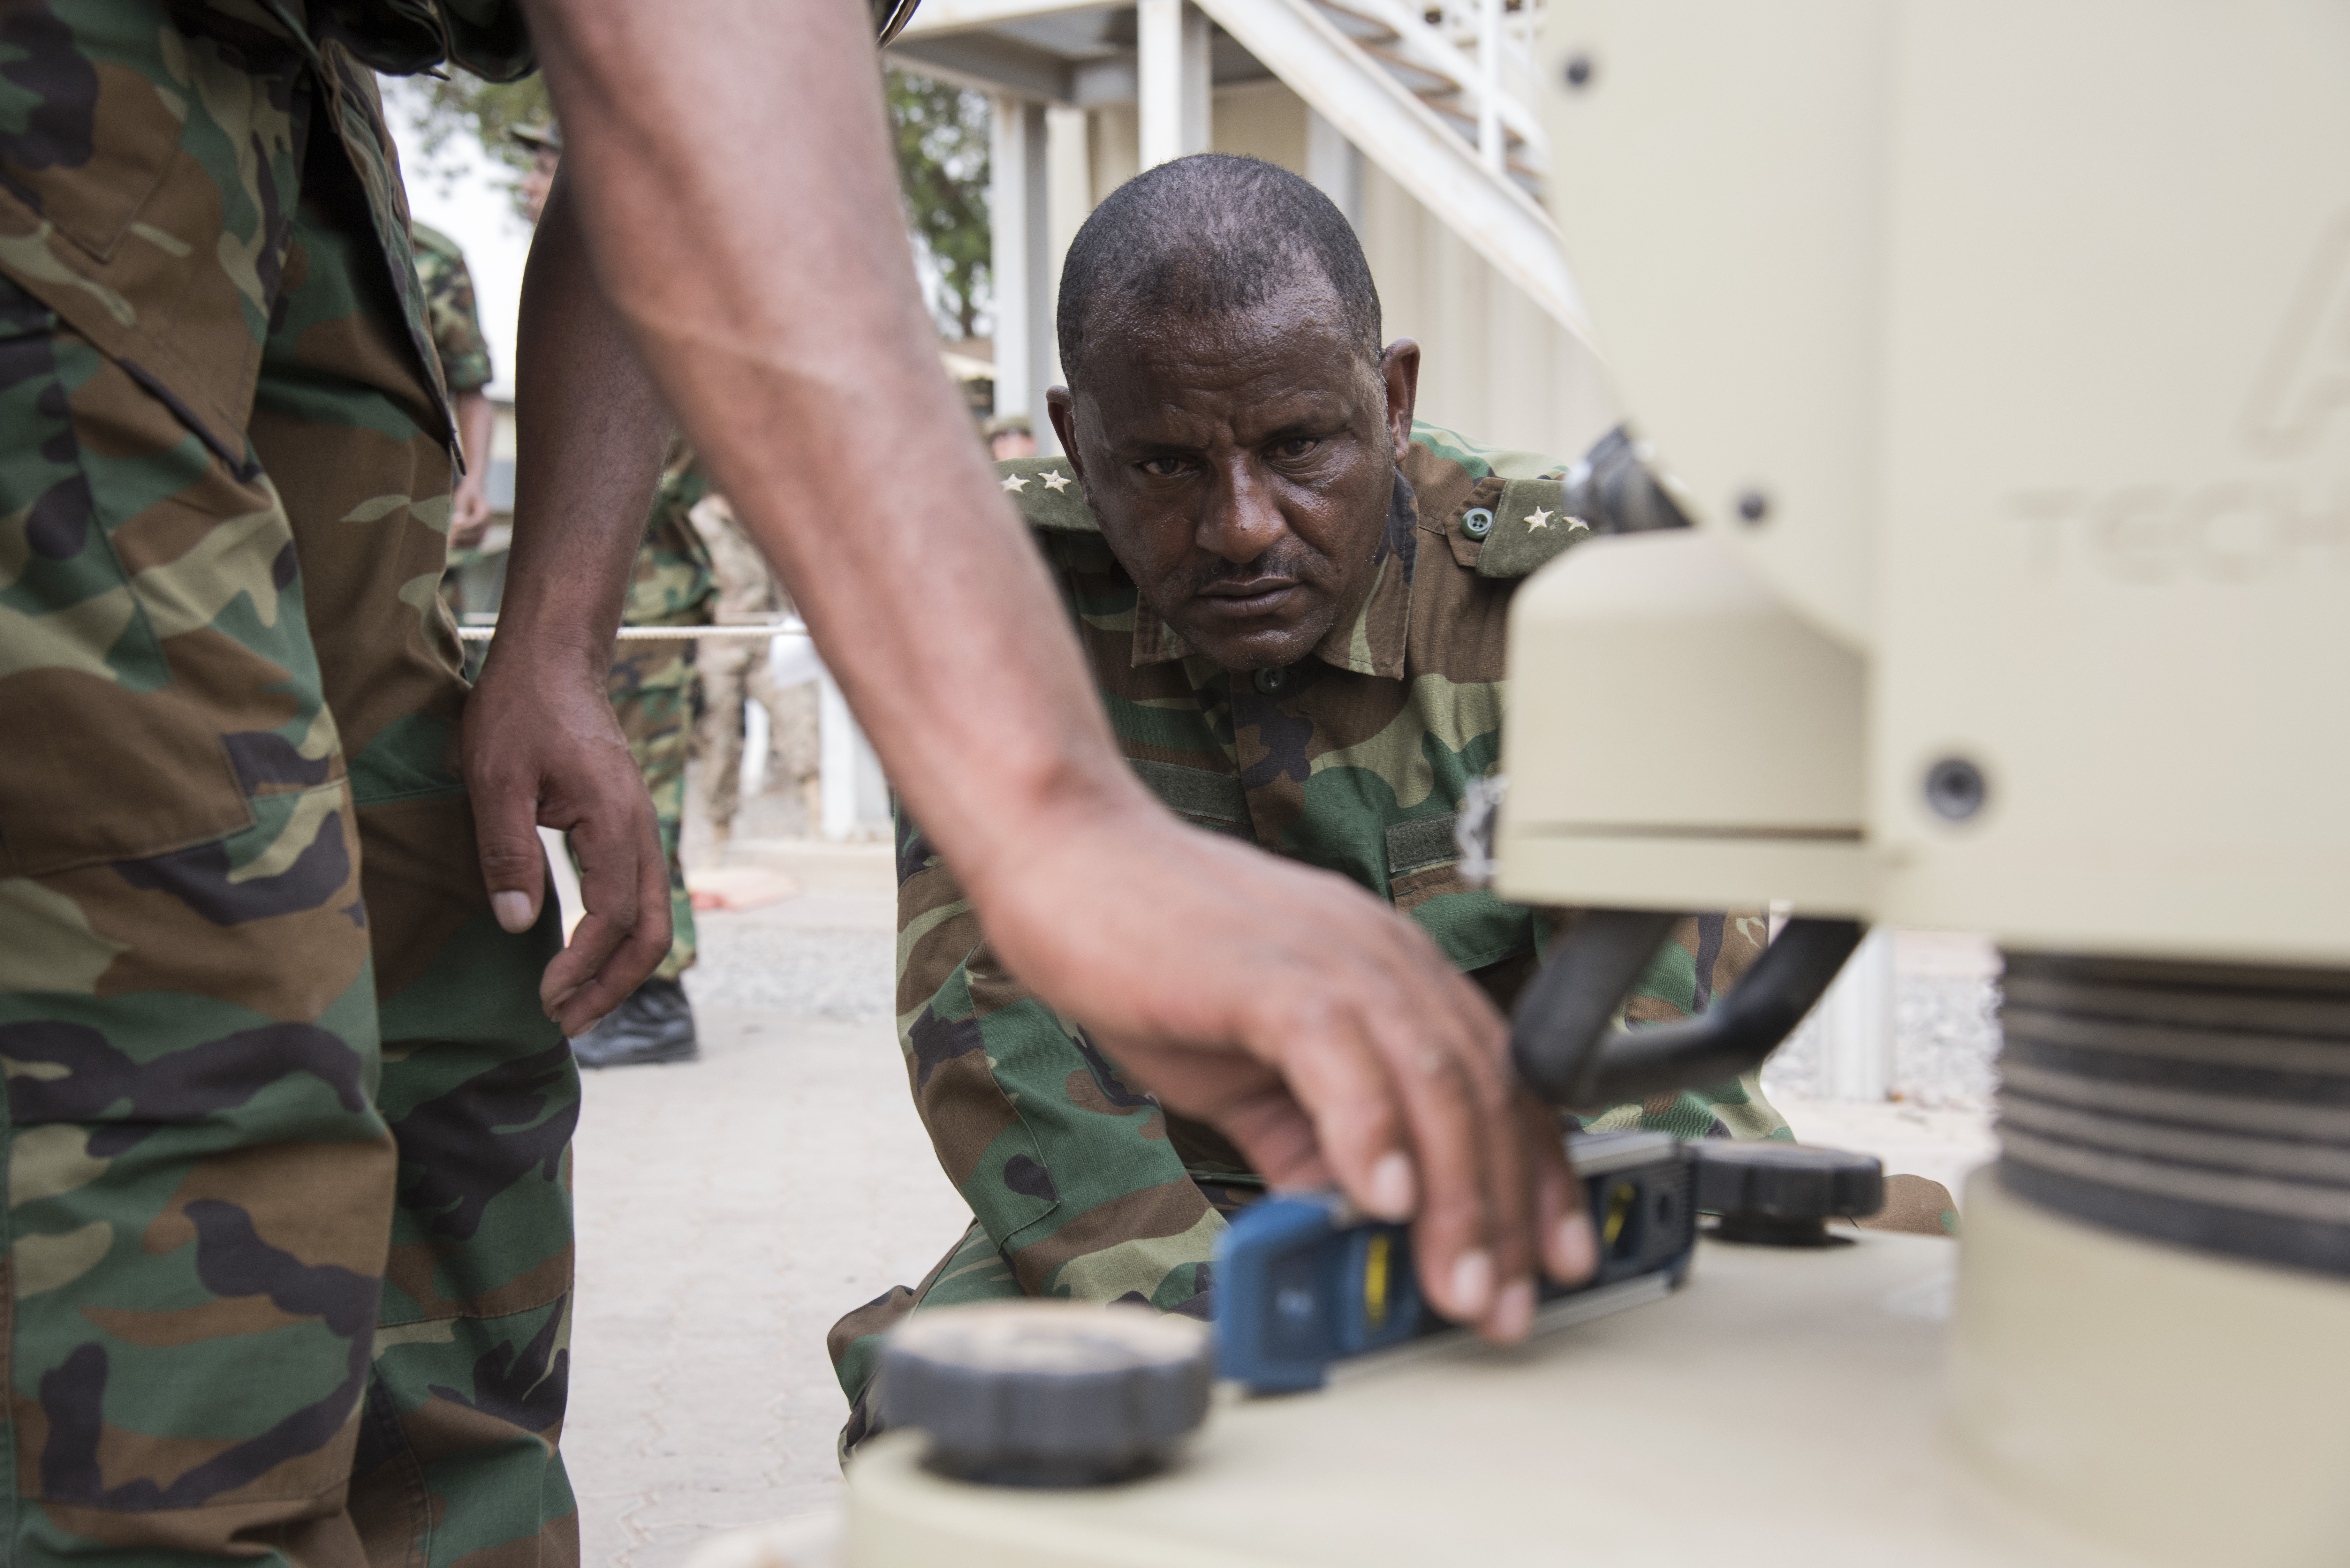 Members of the Ethiopian National Defense Force (ENDF) level the body of a U.S. Africa Command Data Sharing Network (ADSN) terminal at Camp Lemonnier, Djibouti, Aug 18, 2015. ENDF personnel were tested on how quickly they could setup and tear down the field communication system as part of a multi-week ADSN course designed to broaden communication interoperability between host nation security forces, which was hosted by communications and intelligence personnel assigned to Combined Joint Task Force-Horn of Africa. (U.S. Air Force photo by Staff Sgt. Nathan Maysonet/released)